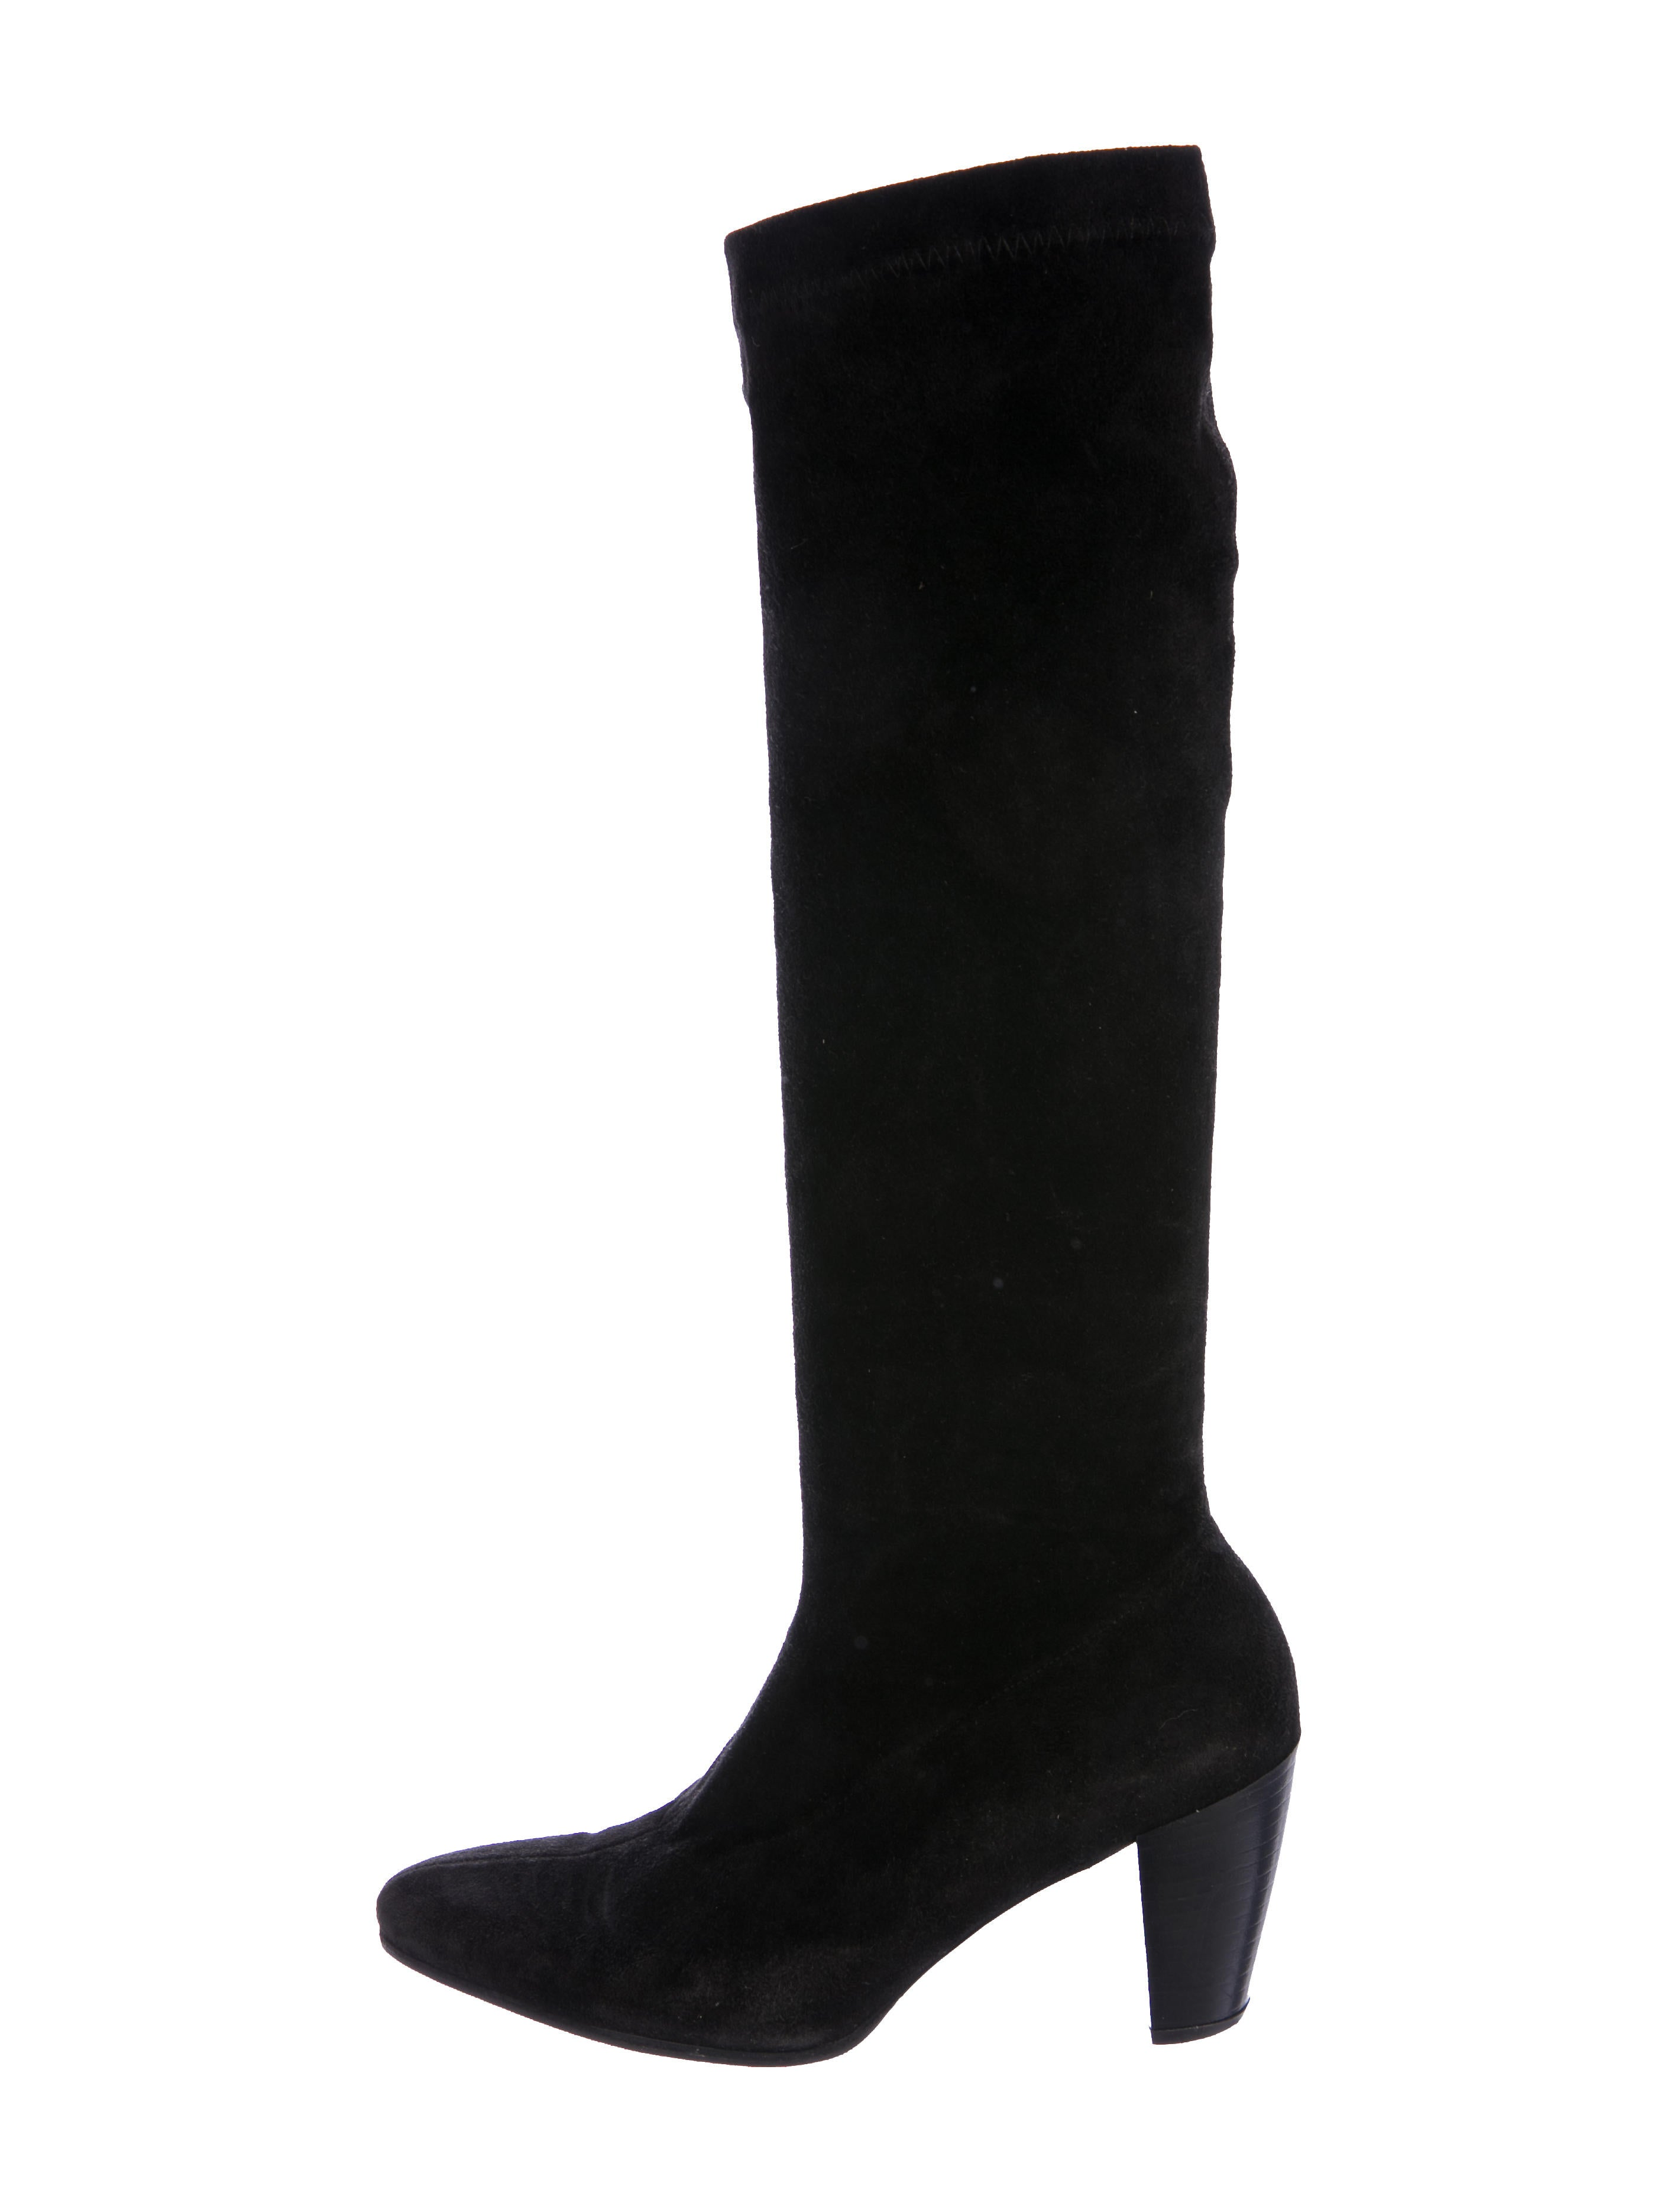 Robert Clergerie Suede Knee-High Boots latest cheap price fML0Q